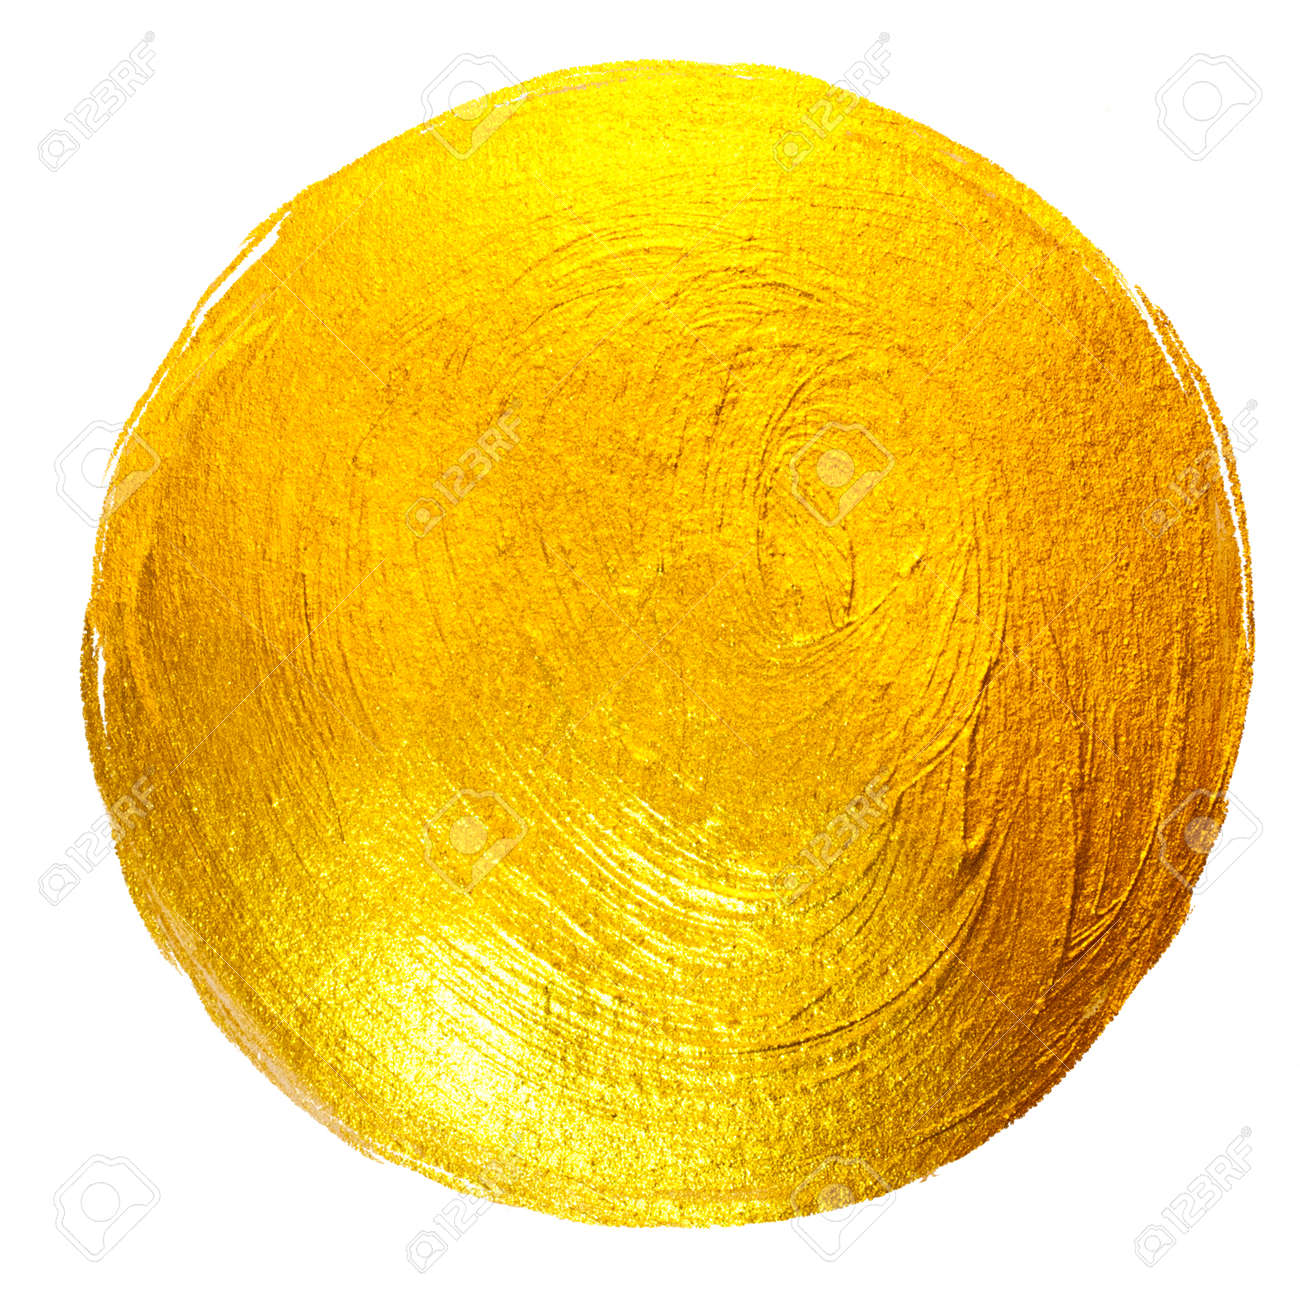 Gold Foil Round Shining Paint Stain Hand Drawn Raster Illustration. - 70969198